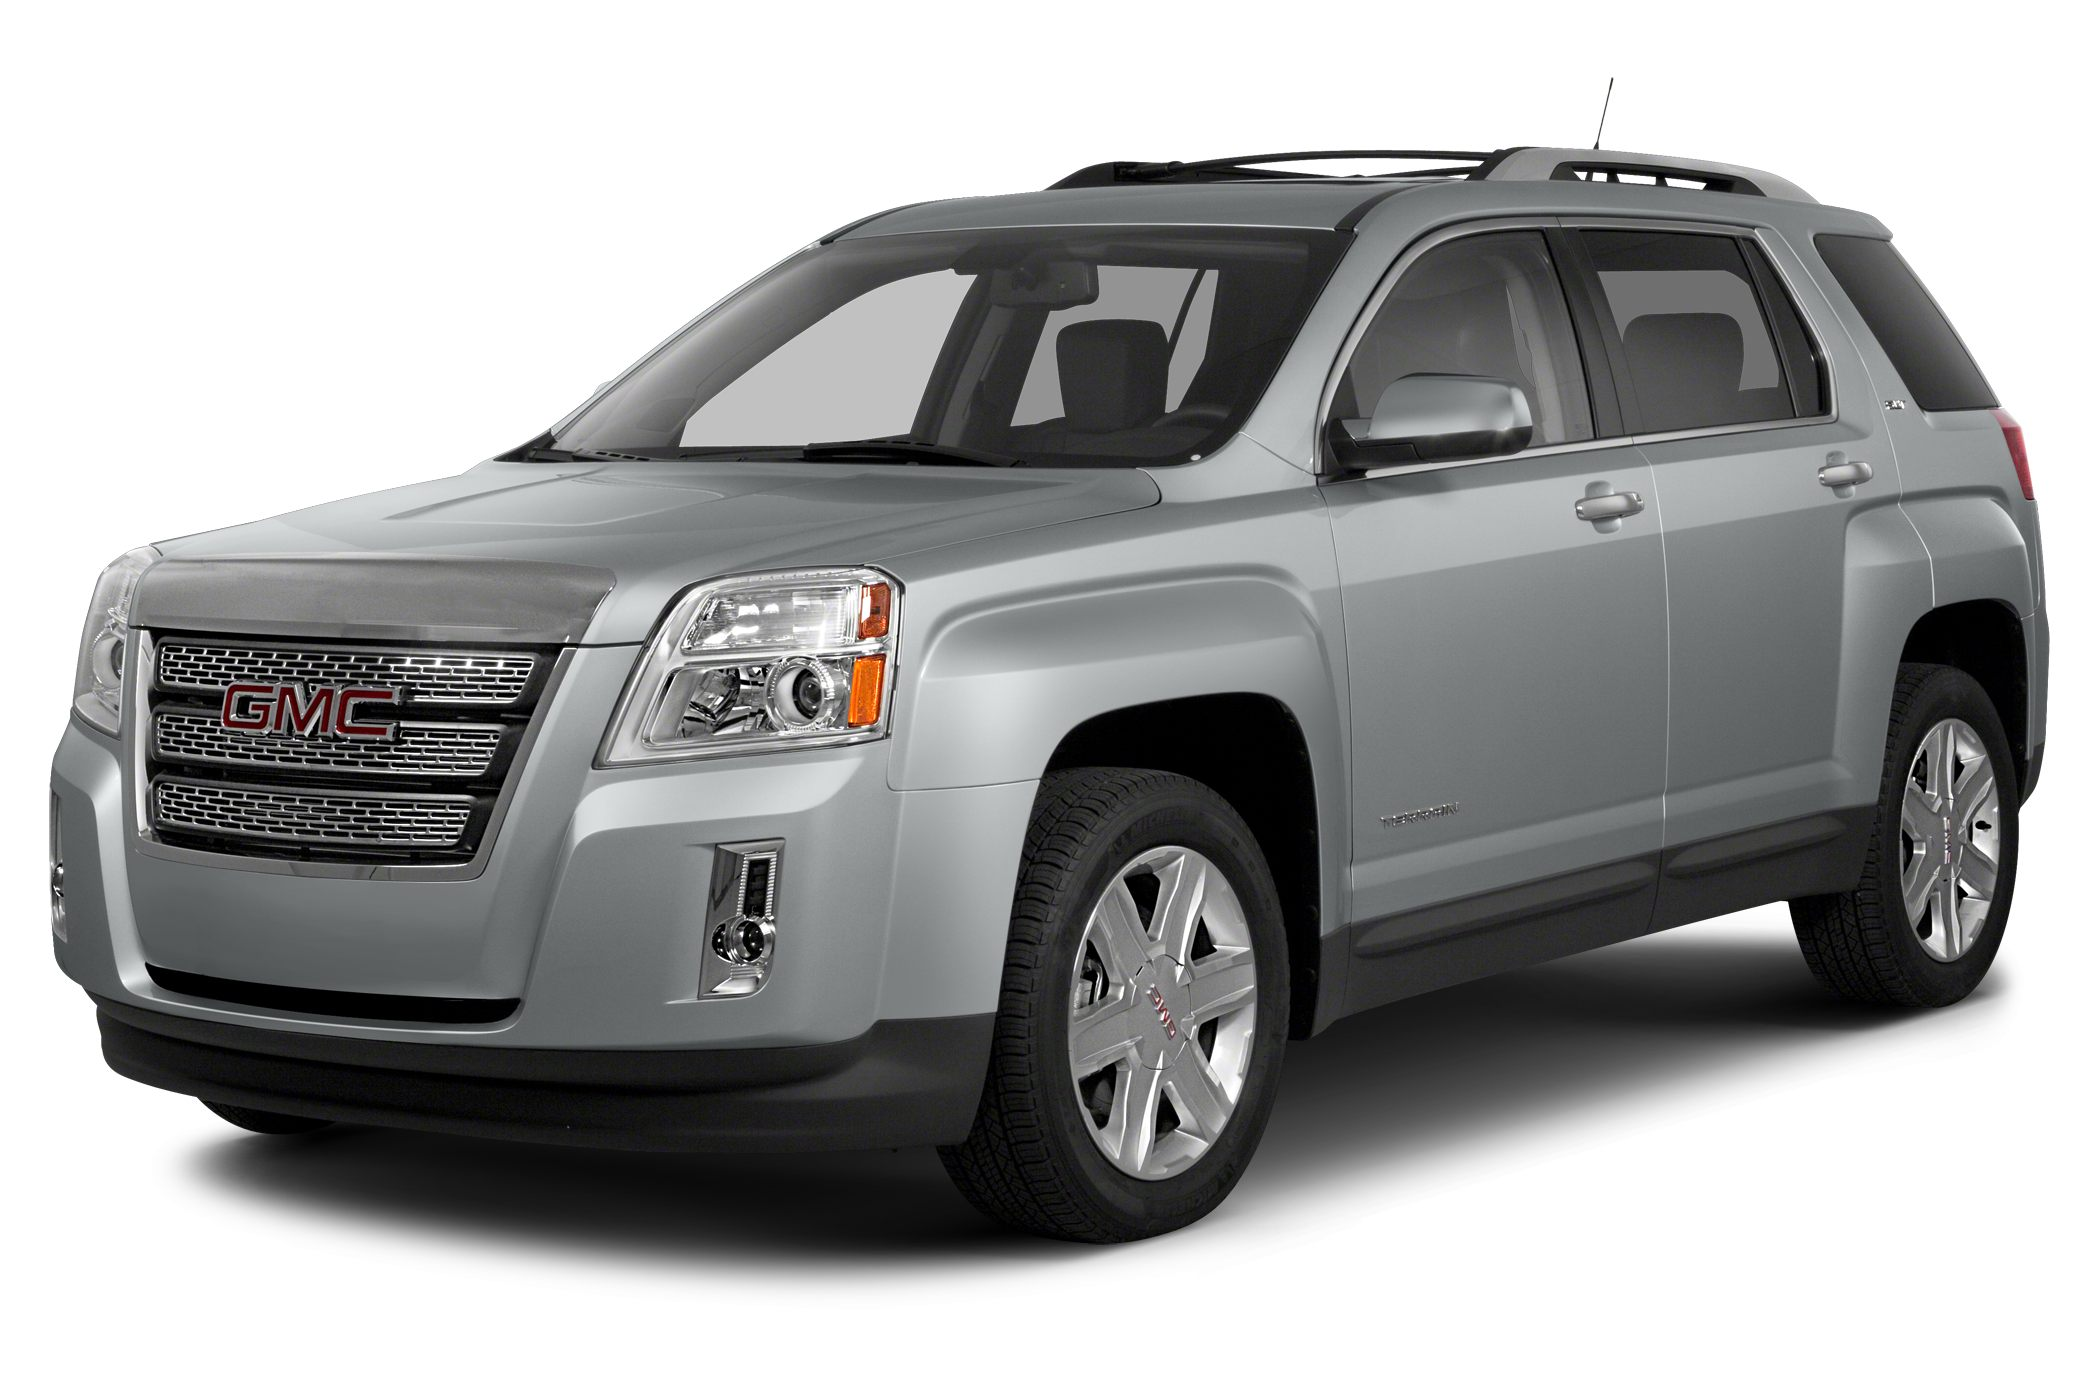 2014 GMC Terrain SLE-2 SUV for sale in Greenville for $21,795 with 24,500 miles.